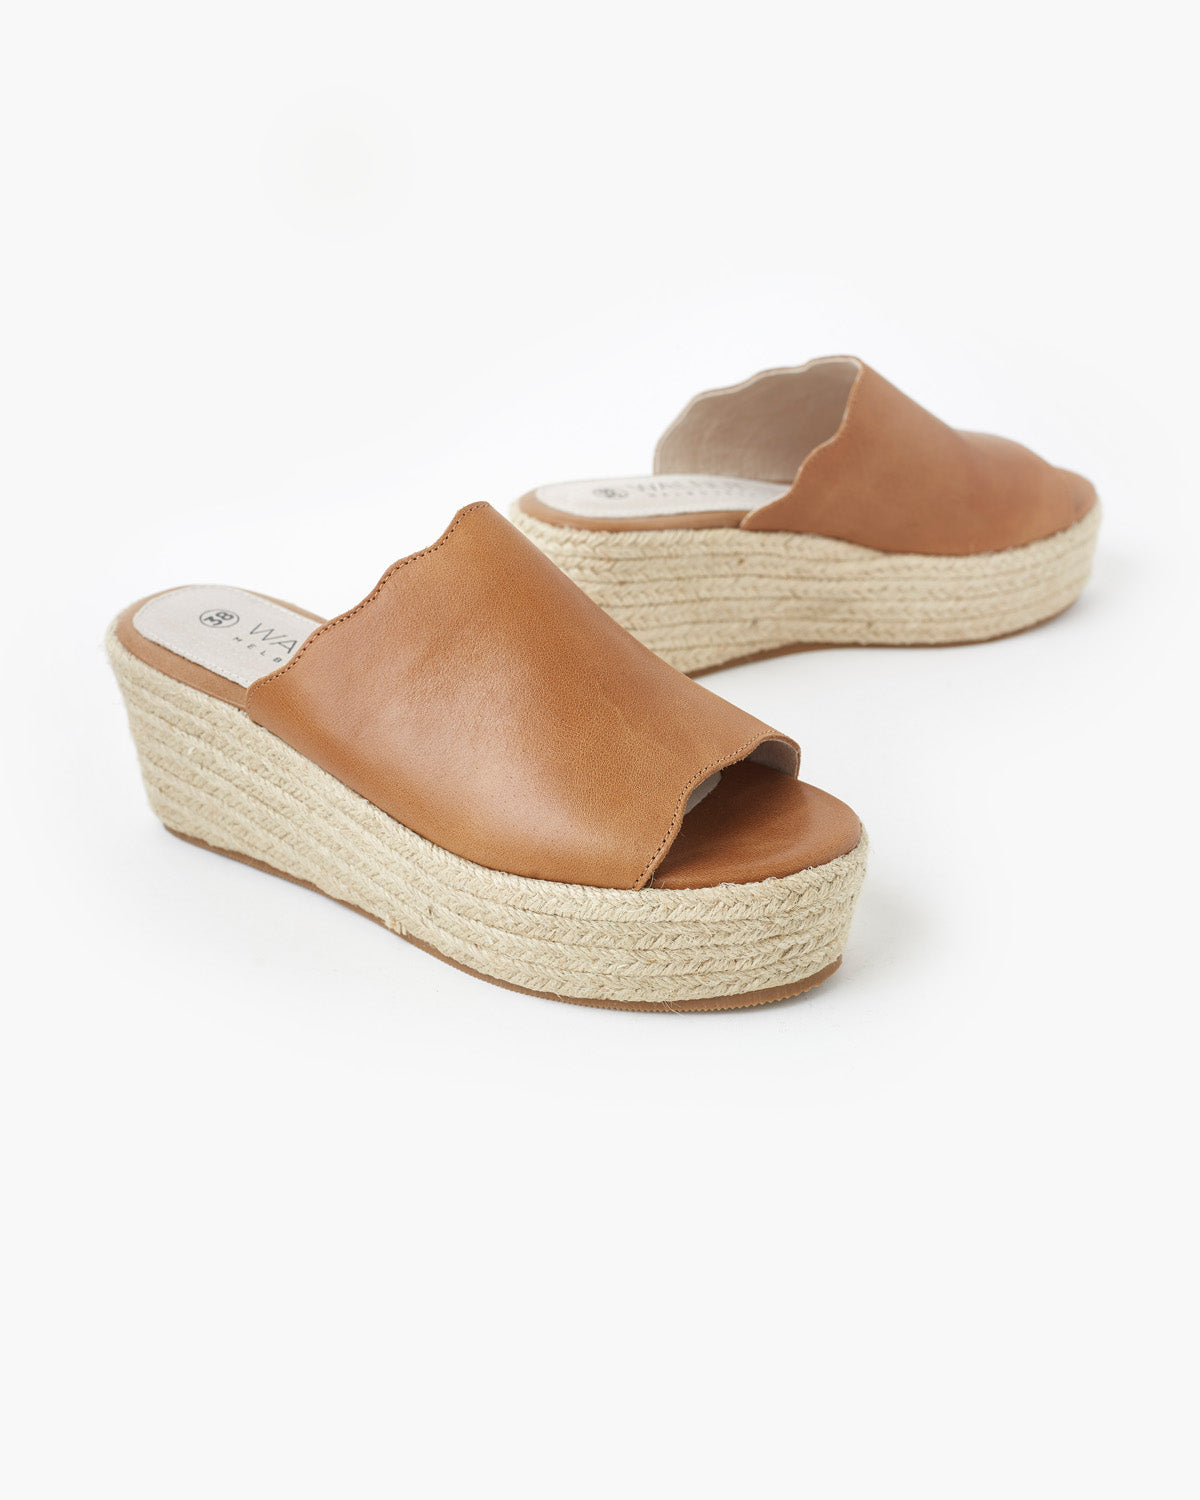 Chic Leather Flatform - Tan